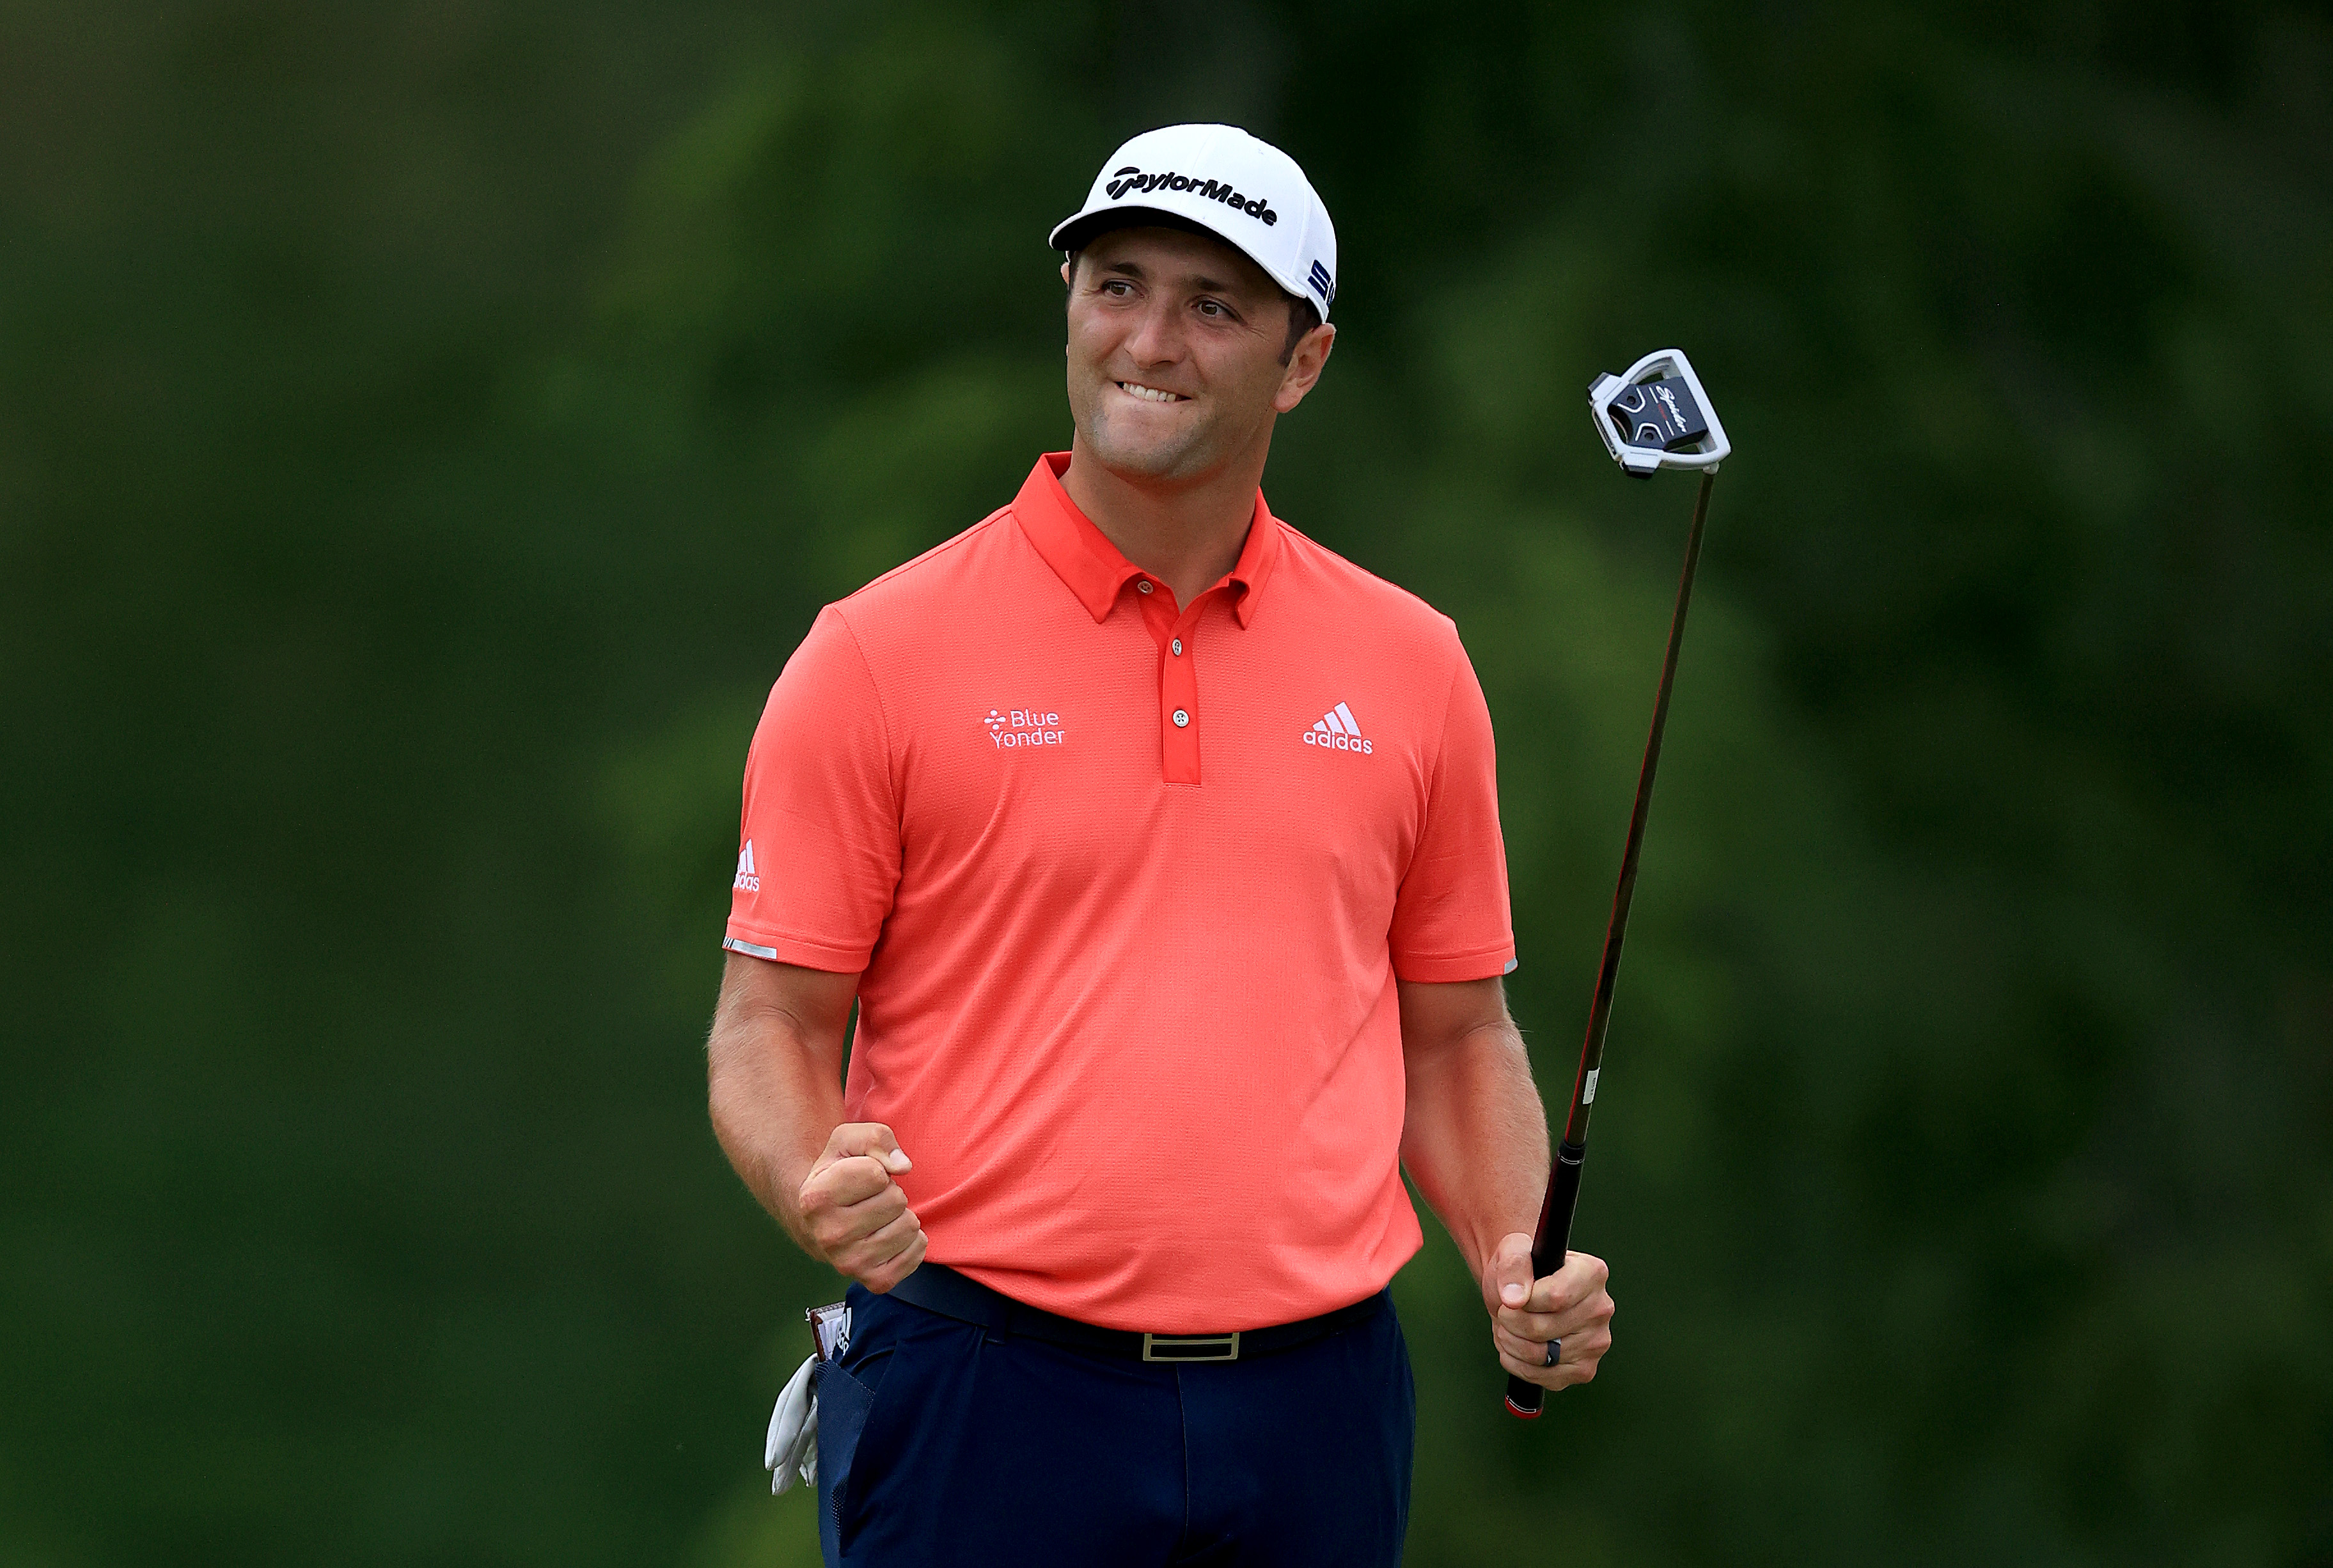 Jon Rahm of Spain celebrates on the 18th green after winning during the final round of The Memorial Tournament on July 19, 2020 at Muirfield Village Golf Club in Dublin, Ohio.